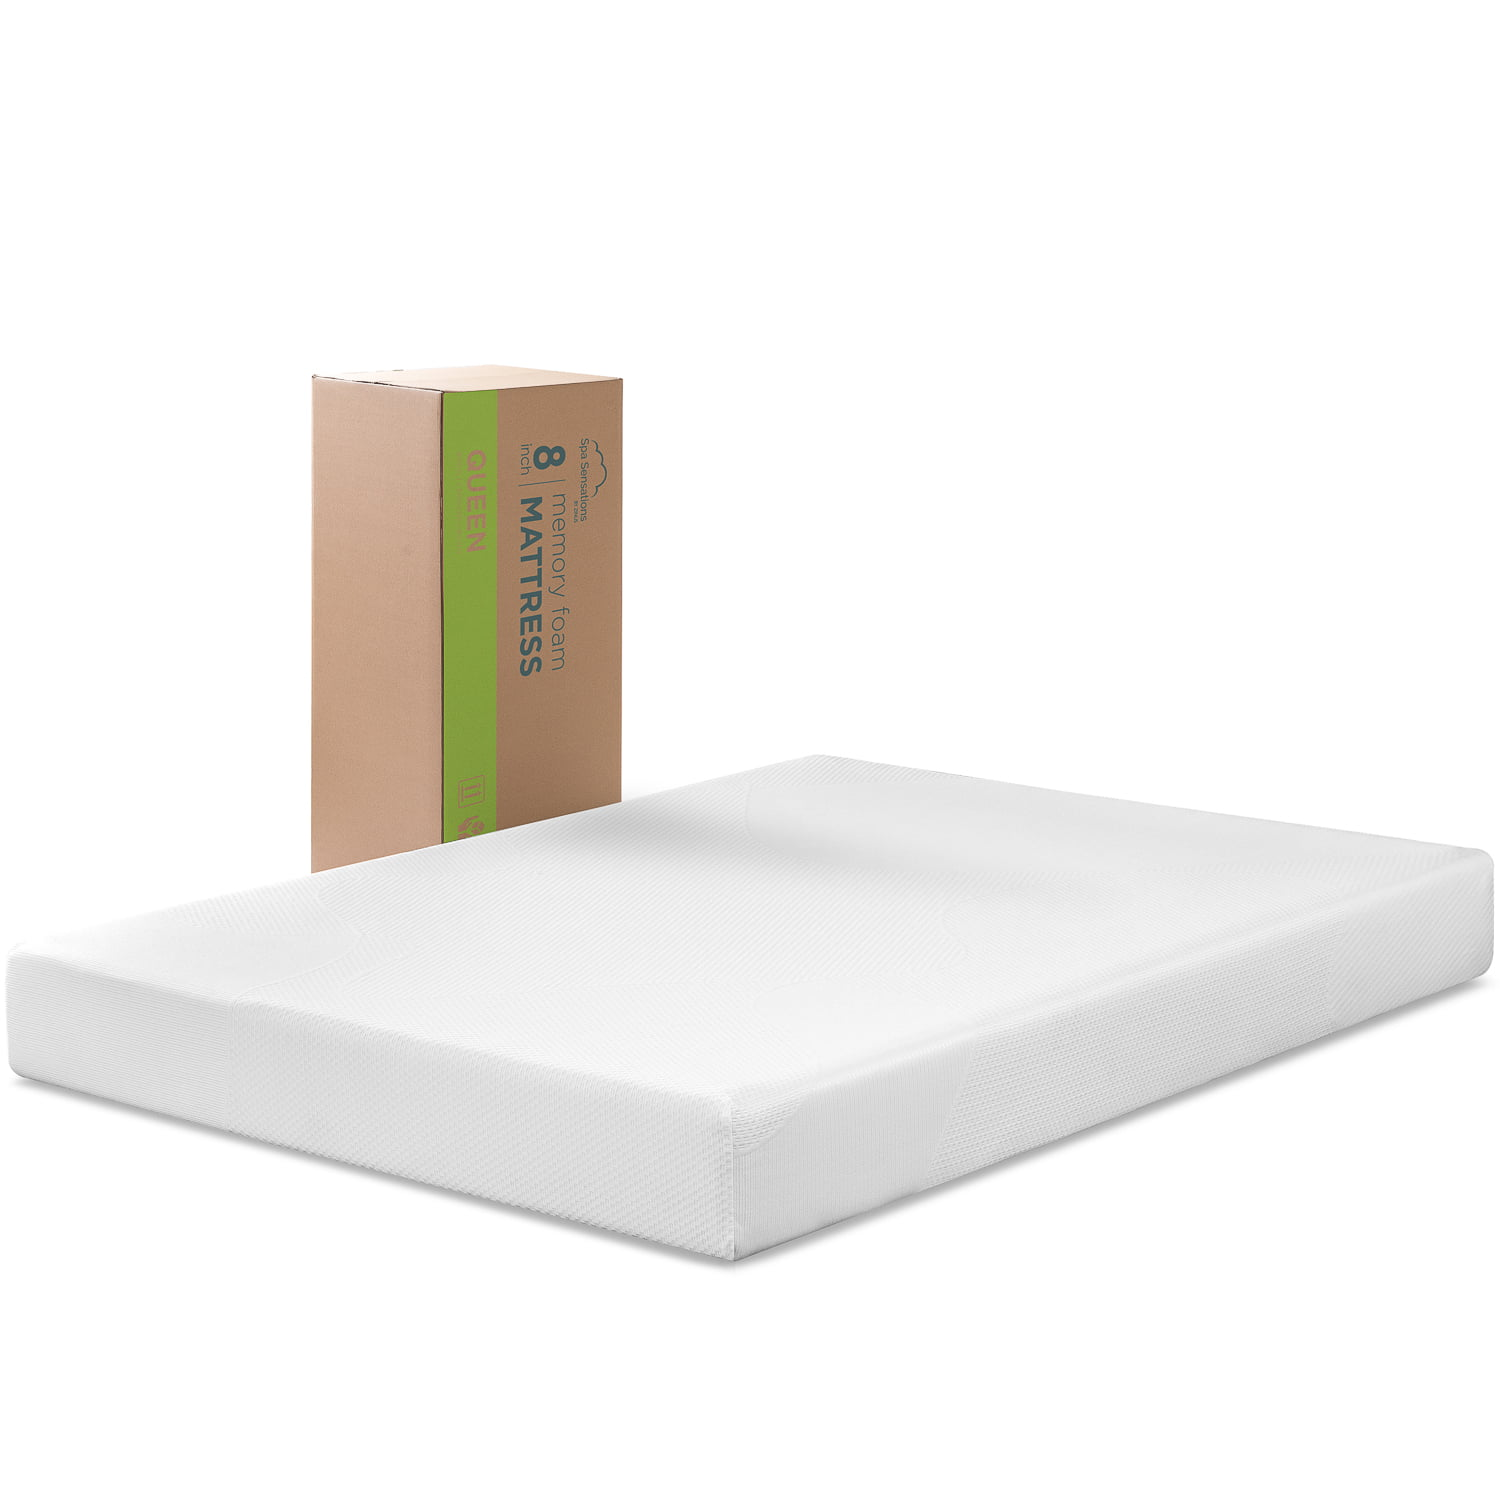 Expanded Queen Mattress Spa Sensations By Zinus 8